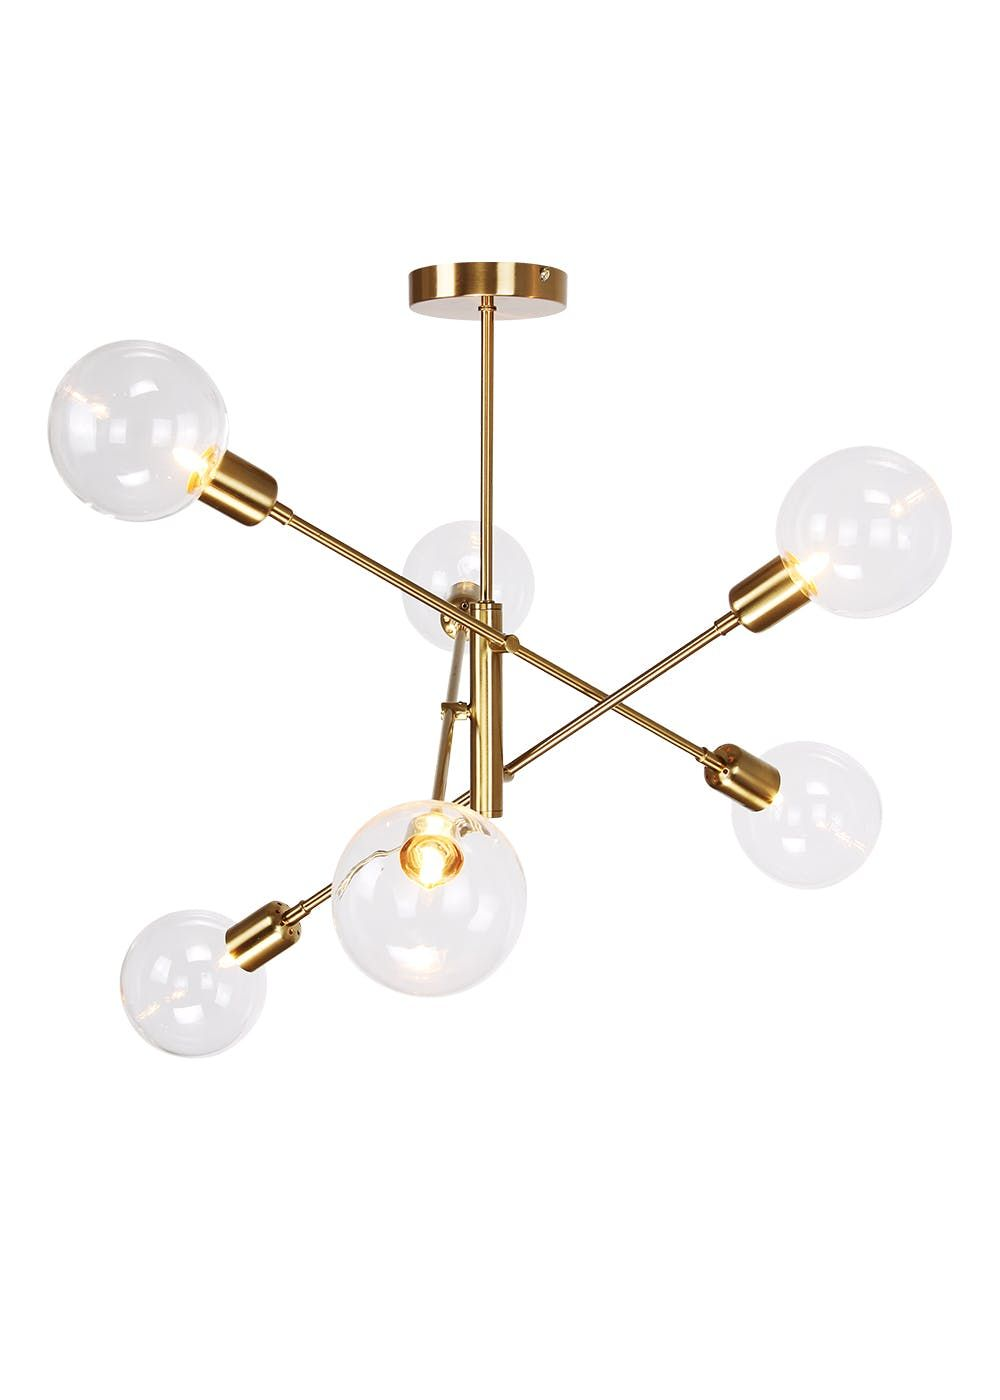 Nova Glass Semi Flush Light W68cm X H64cm Gold Bedroom Ceiling Light Gold Ceiling Light Semi Flush Lighting